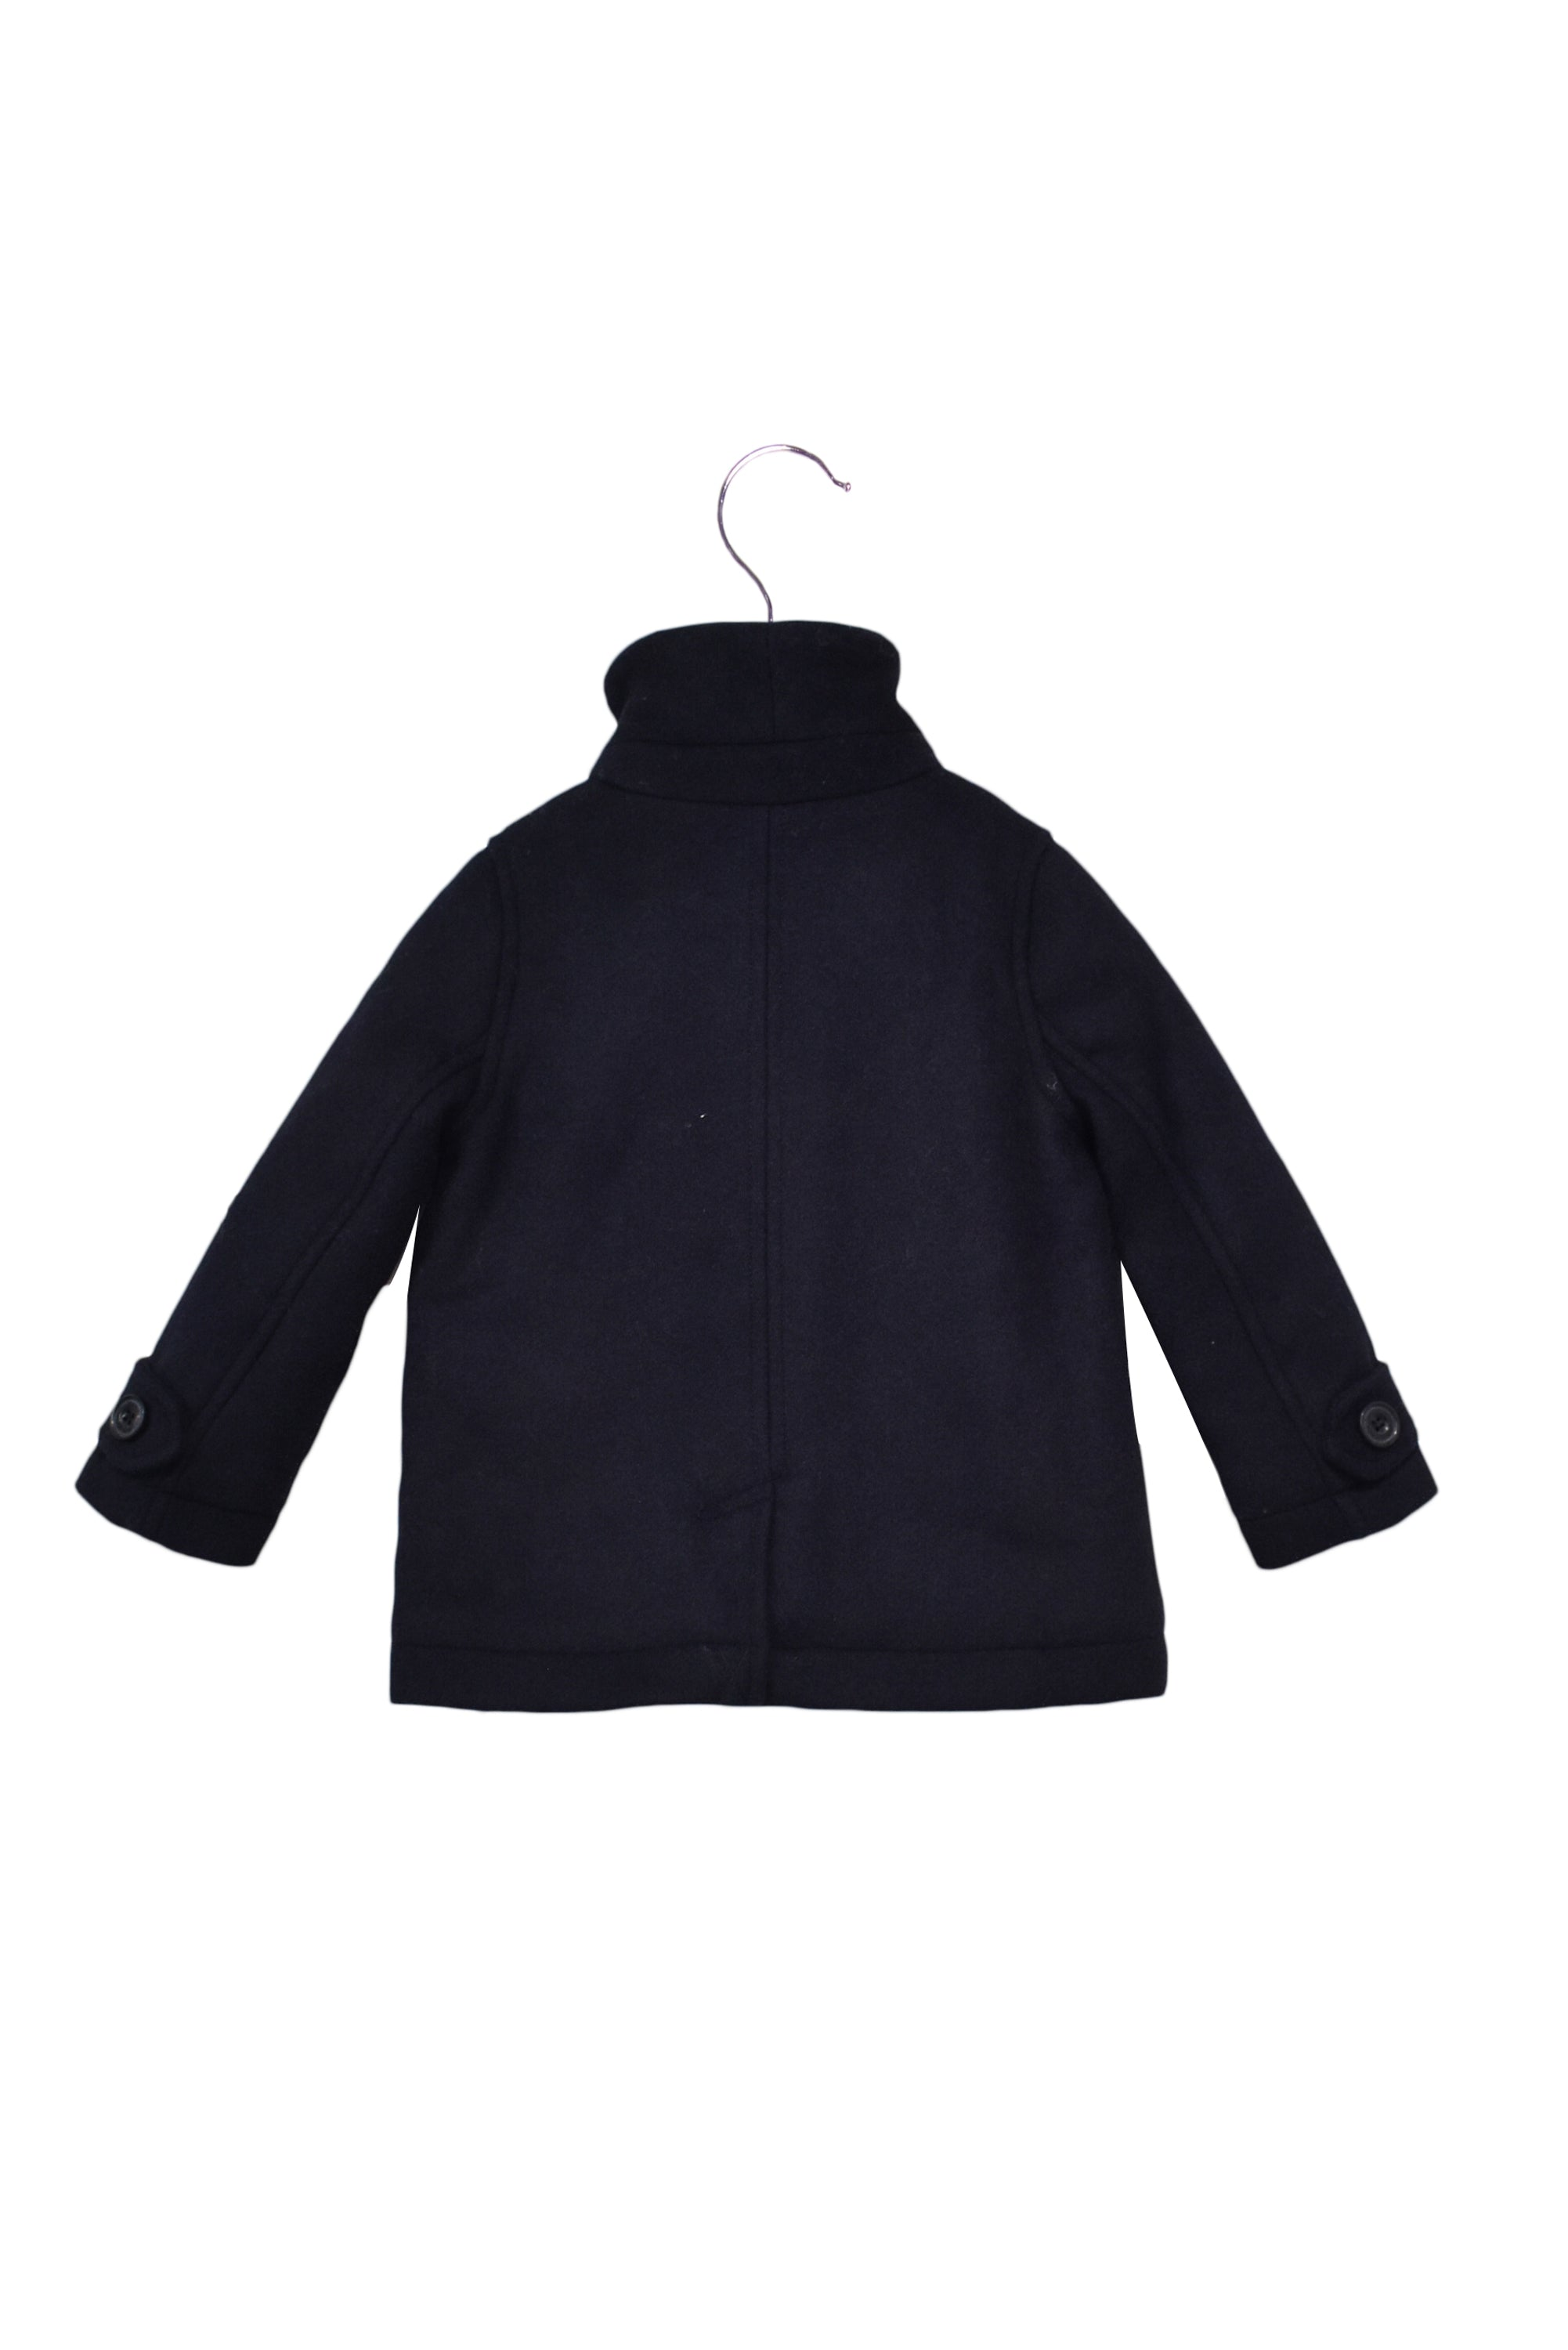 10026915 Jacadi Kids~Coat 2T at Retykle